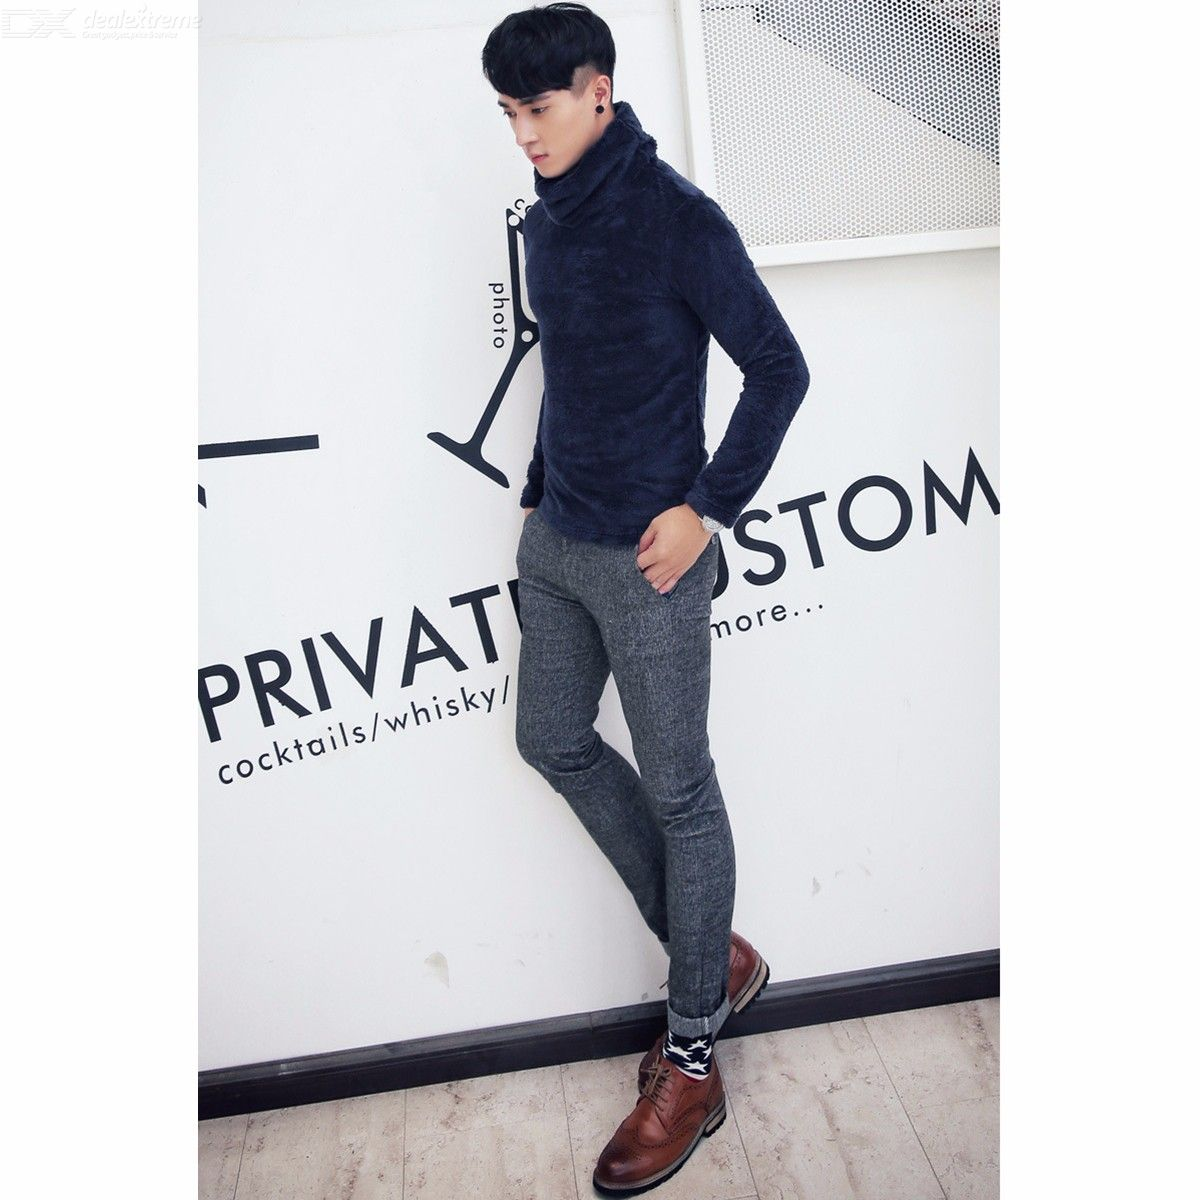 Winter Warm Sweater Men's Thermal High Collar Slim Long Sleeve Sweater Stretch Pullovers